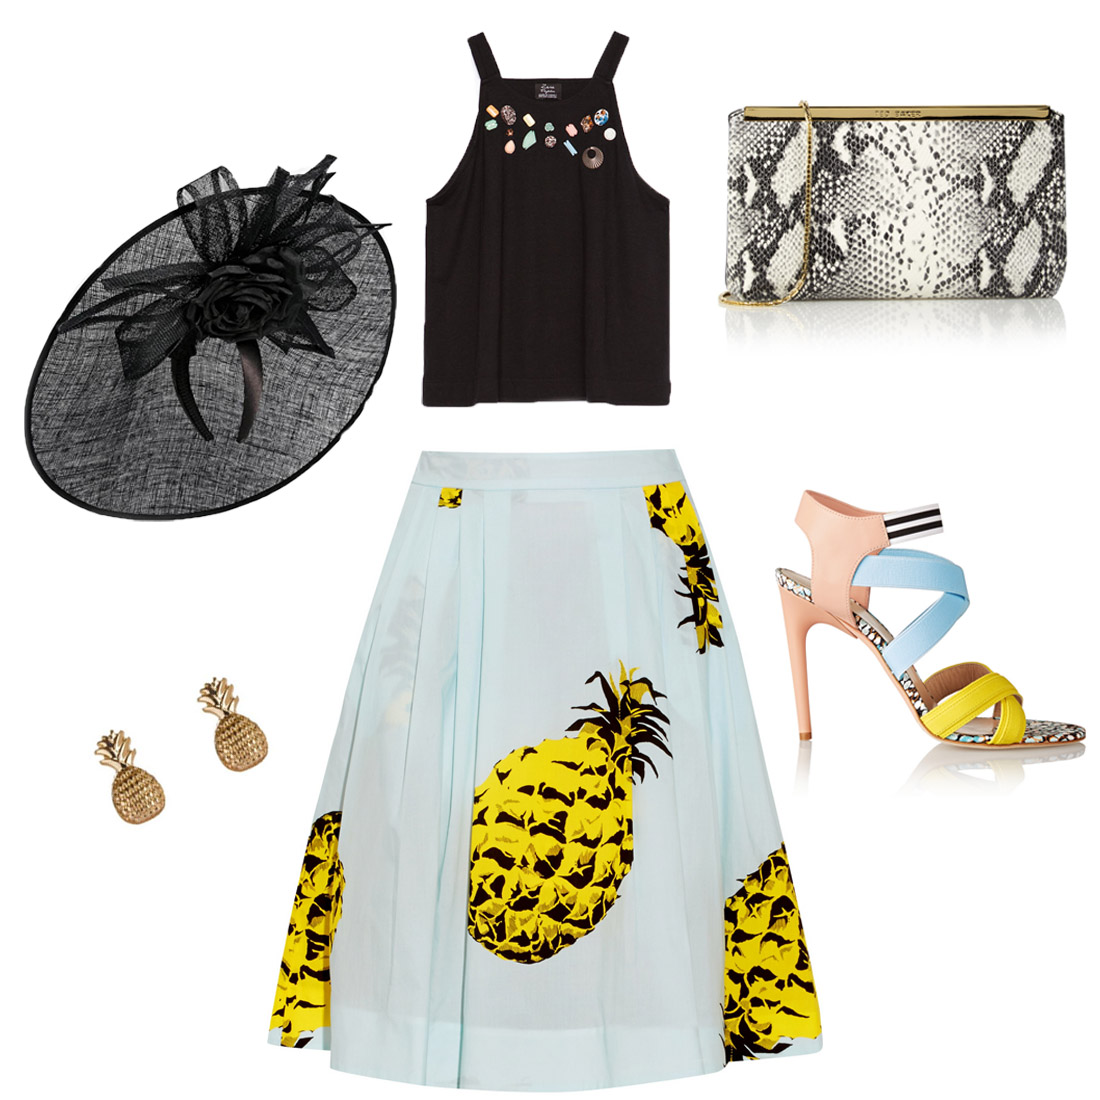 Bag at You - Fashion Blog - Wedding look 3 - Bruiloft outfit 3 - Pinapple Blues - Ananas Blauw